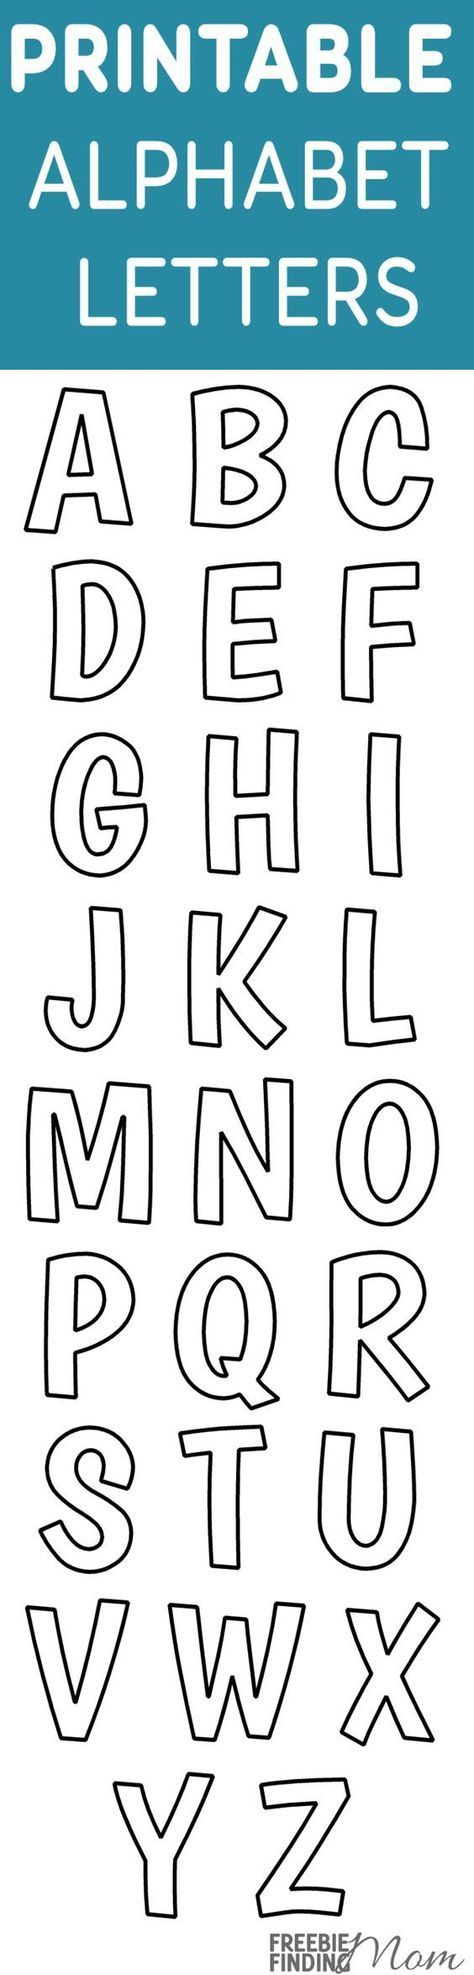 Printable free alphabet templates alphabet templates free printable free alphabet templates are useful for a myriad of projects for school crafts scrapbooking teaching kids their letters a homeschool room and spiritdancerdesigns Image collections